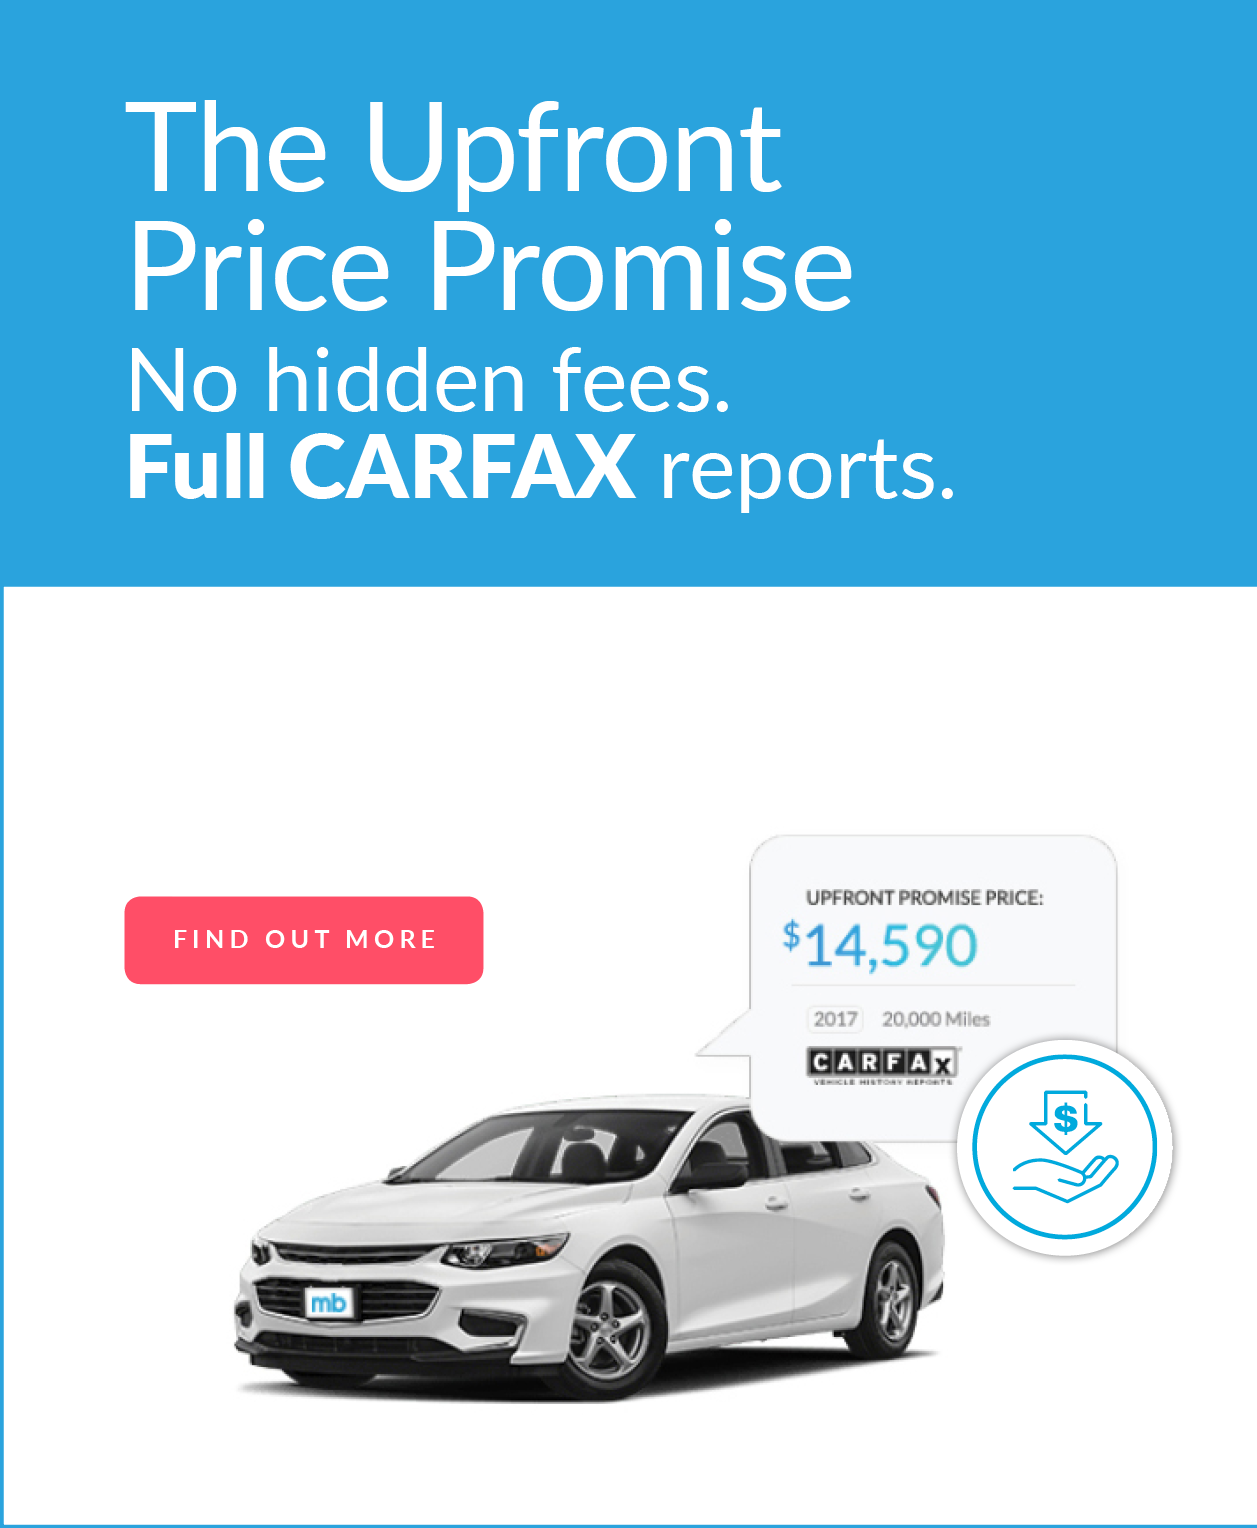 Carfax Fees Unique Carfax Fees New Mb Motorsports